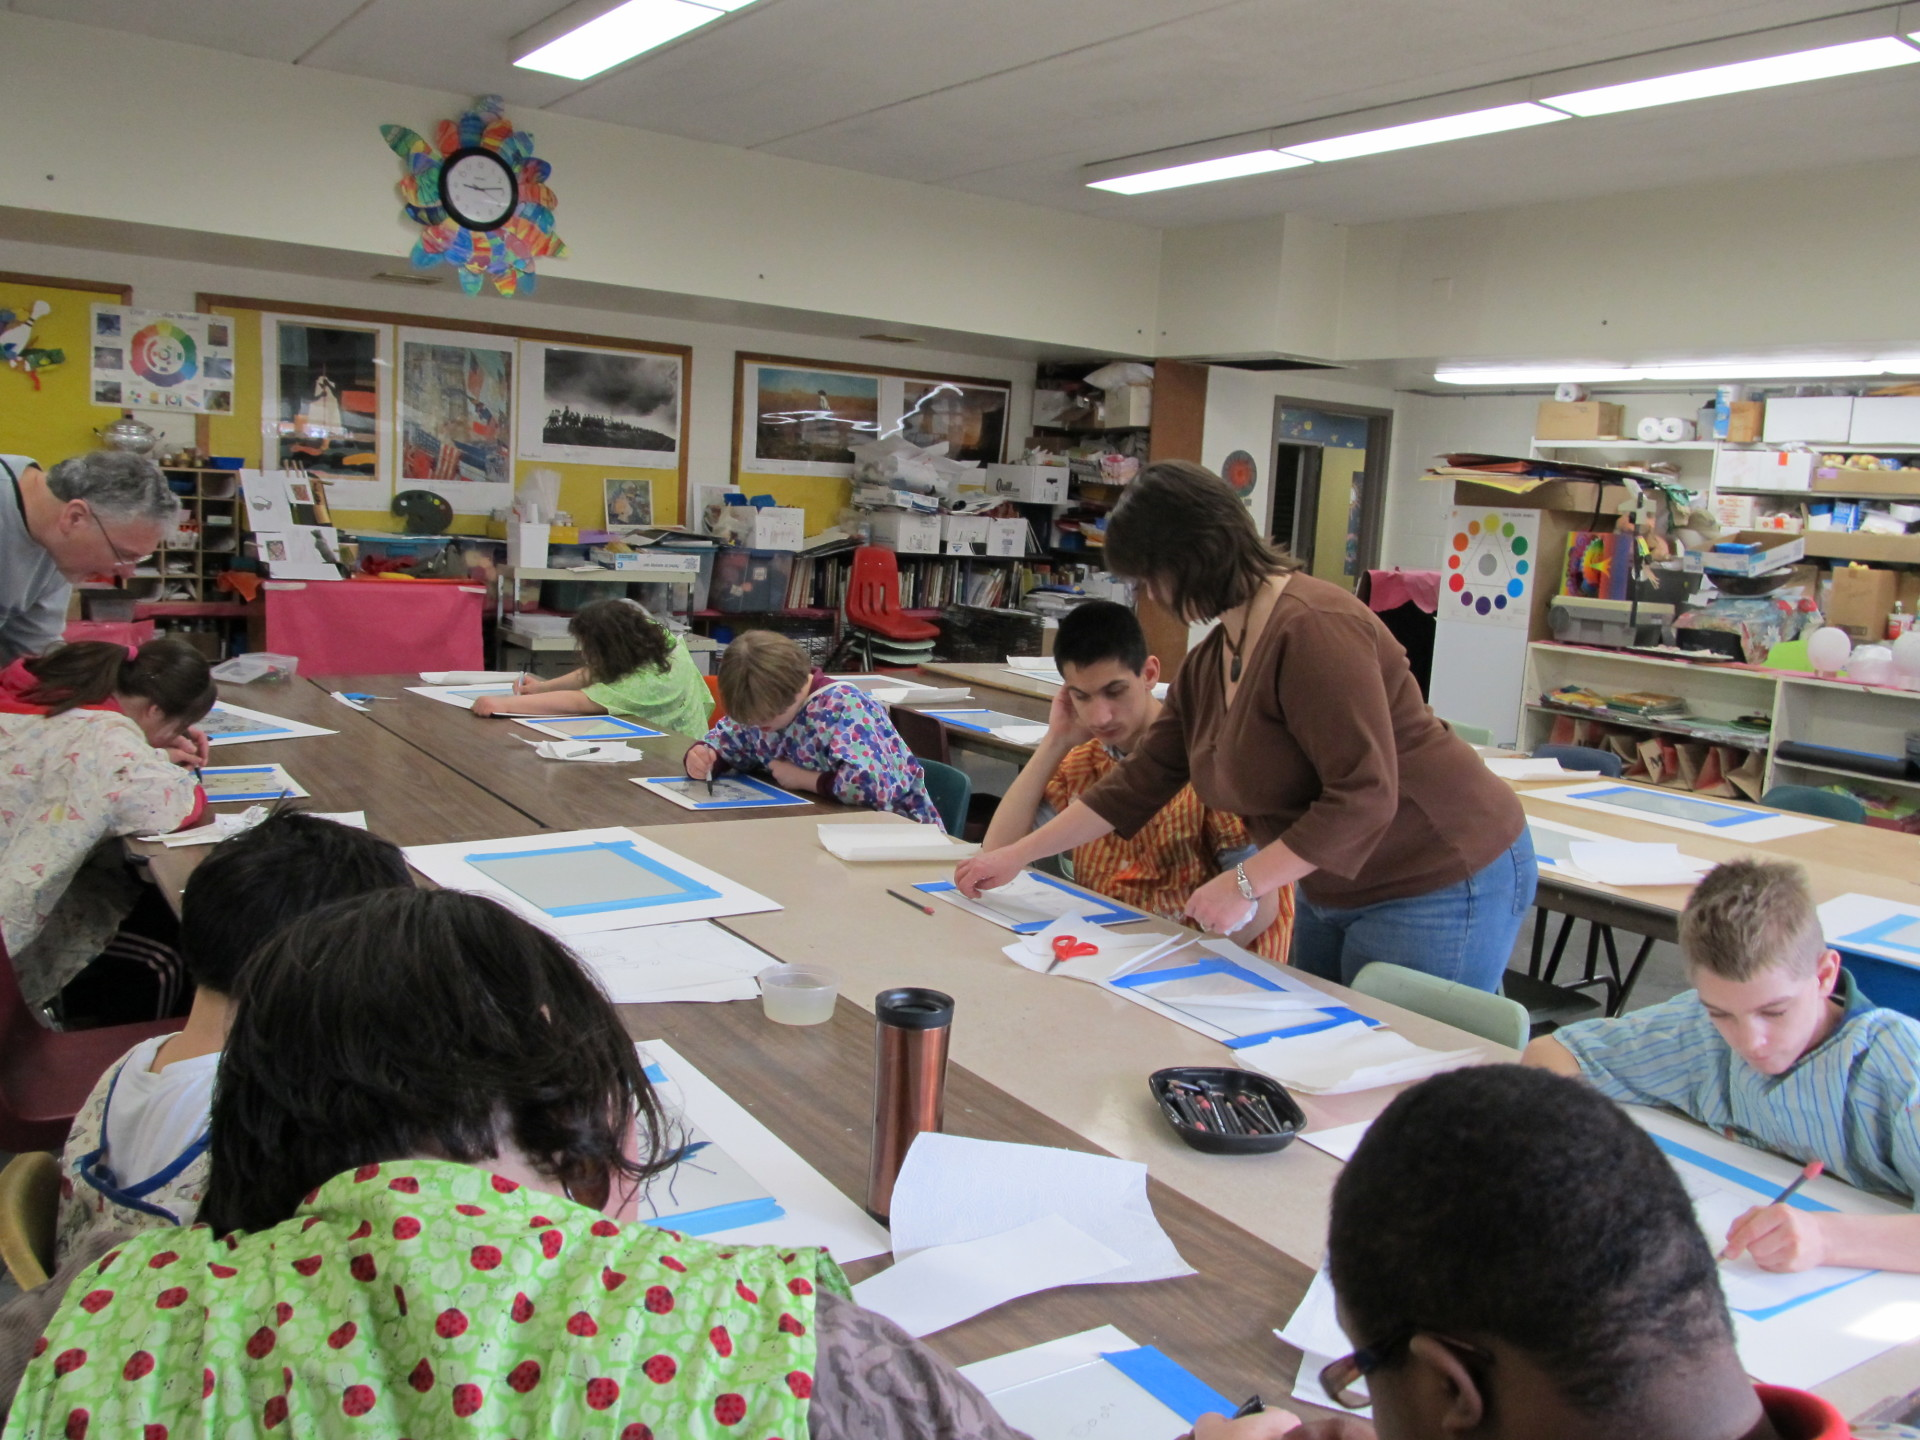 Art class at St Coletta Day School